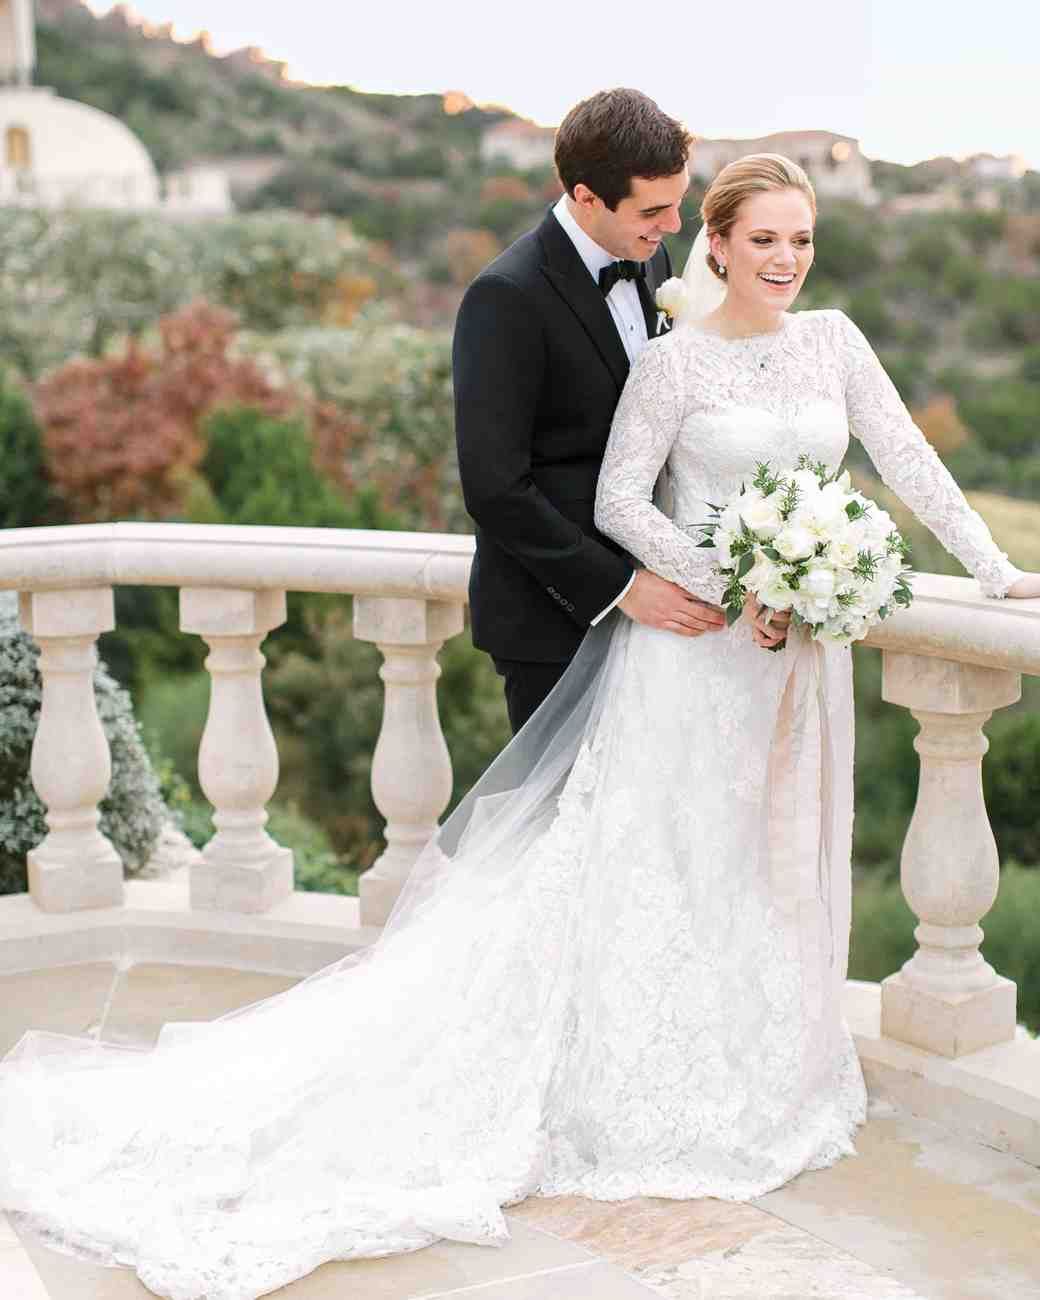 Winter Weddings: A Winter Wedding At A Villa In Austin